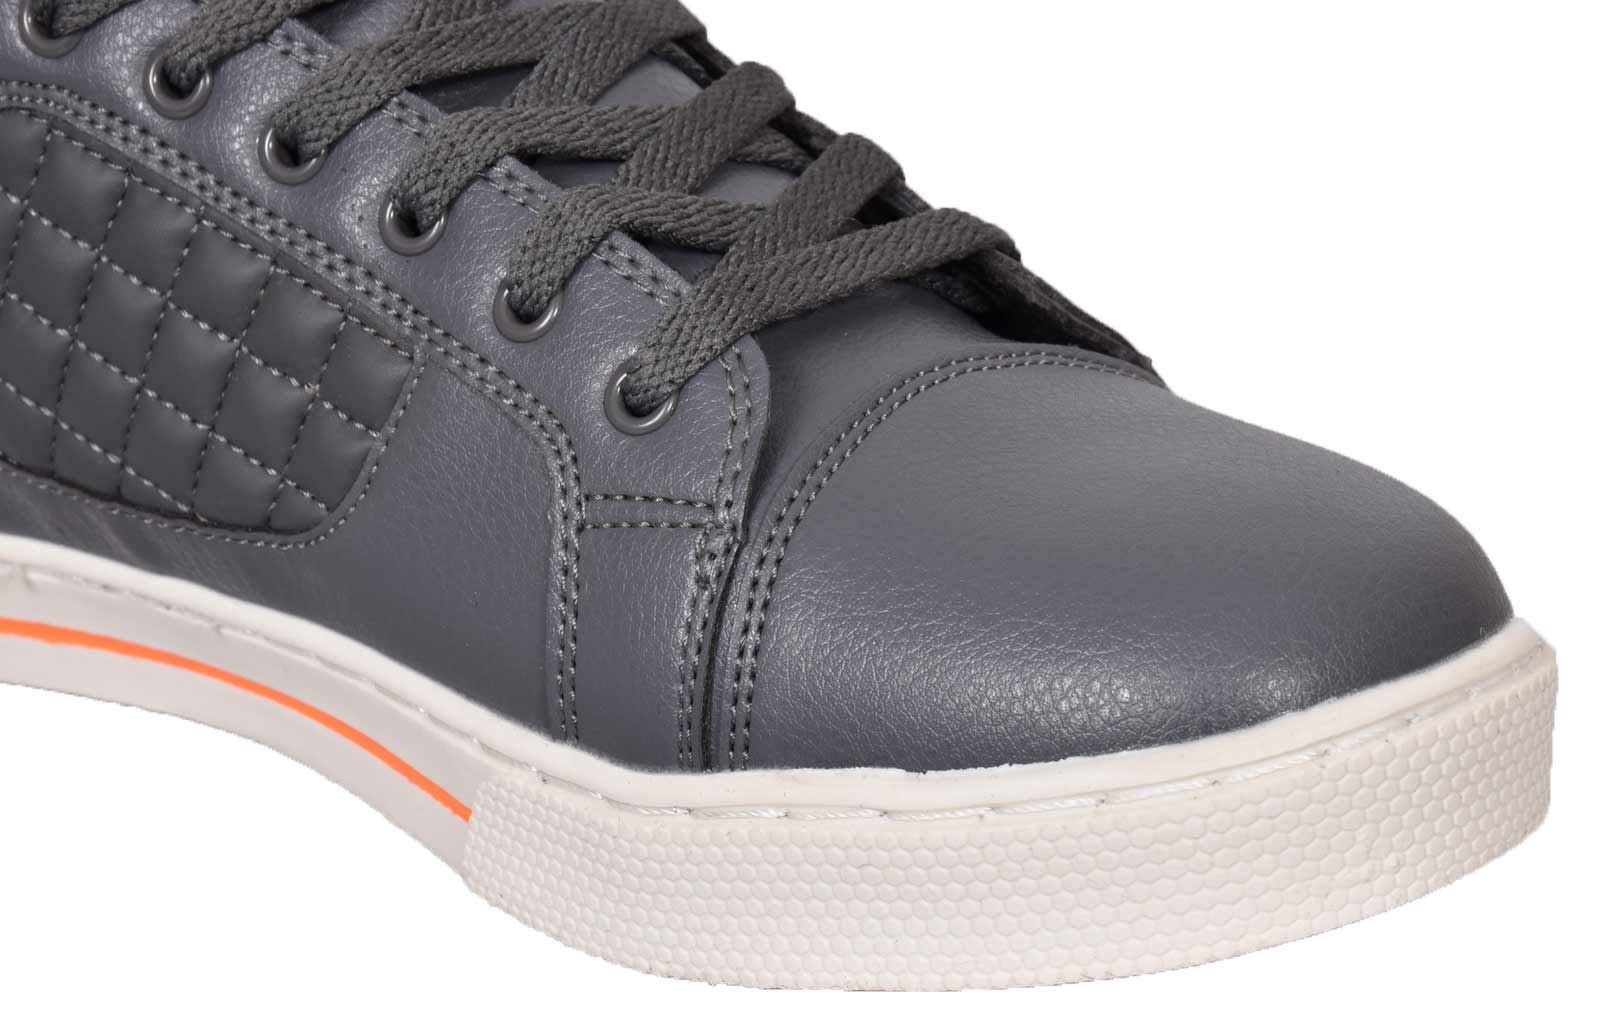 Mens-Trainers-Lace-up-Crosshatch-High-Tops-Ankle-Padded-Shoes-New-UK-Sizes-7-12 thumbnail 16